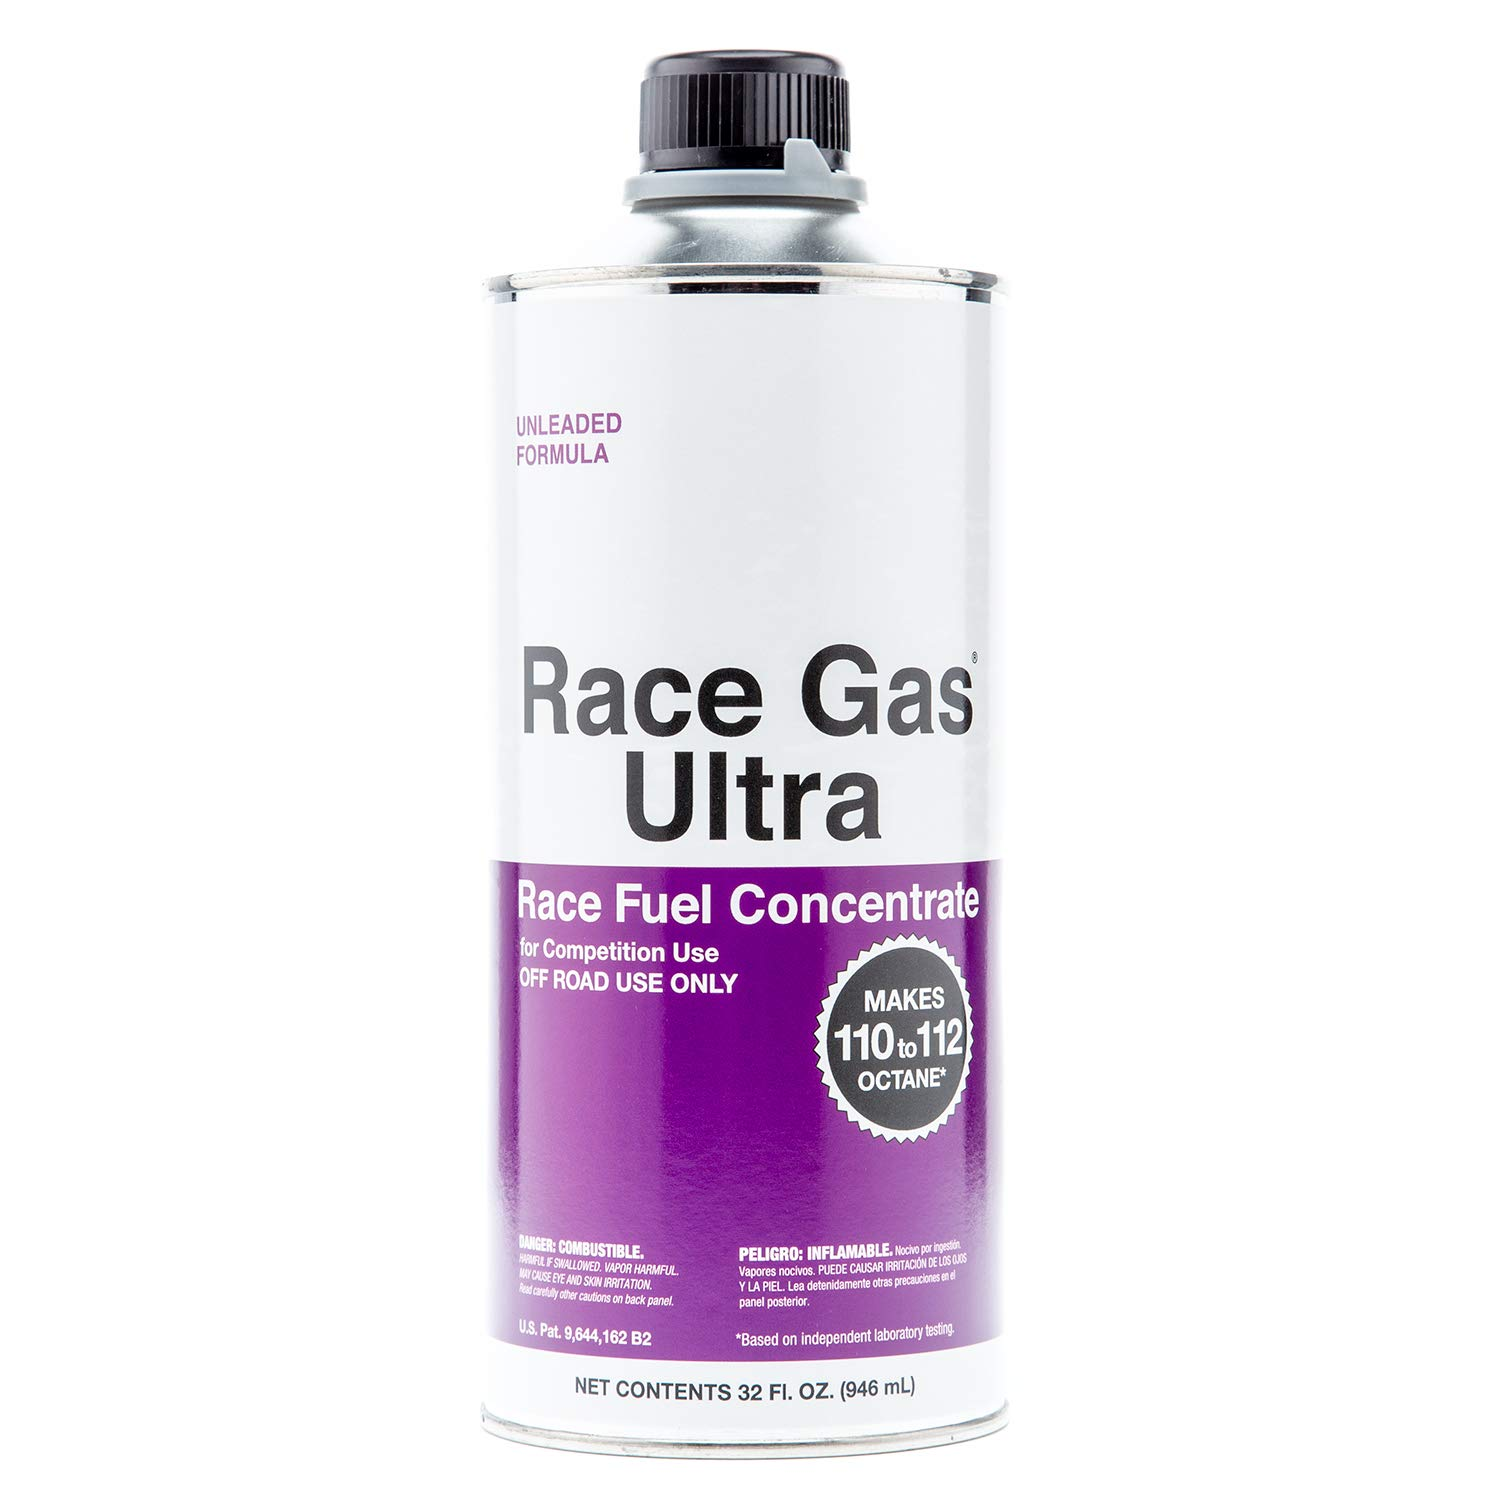 RaceGas Ultra 200032 Premium Unleaded Race Fuel Concentrate Increases Gasoline Up to 112 Octan, 6 Pack by RaceGas